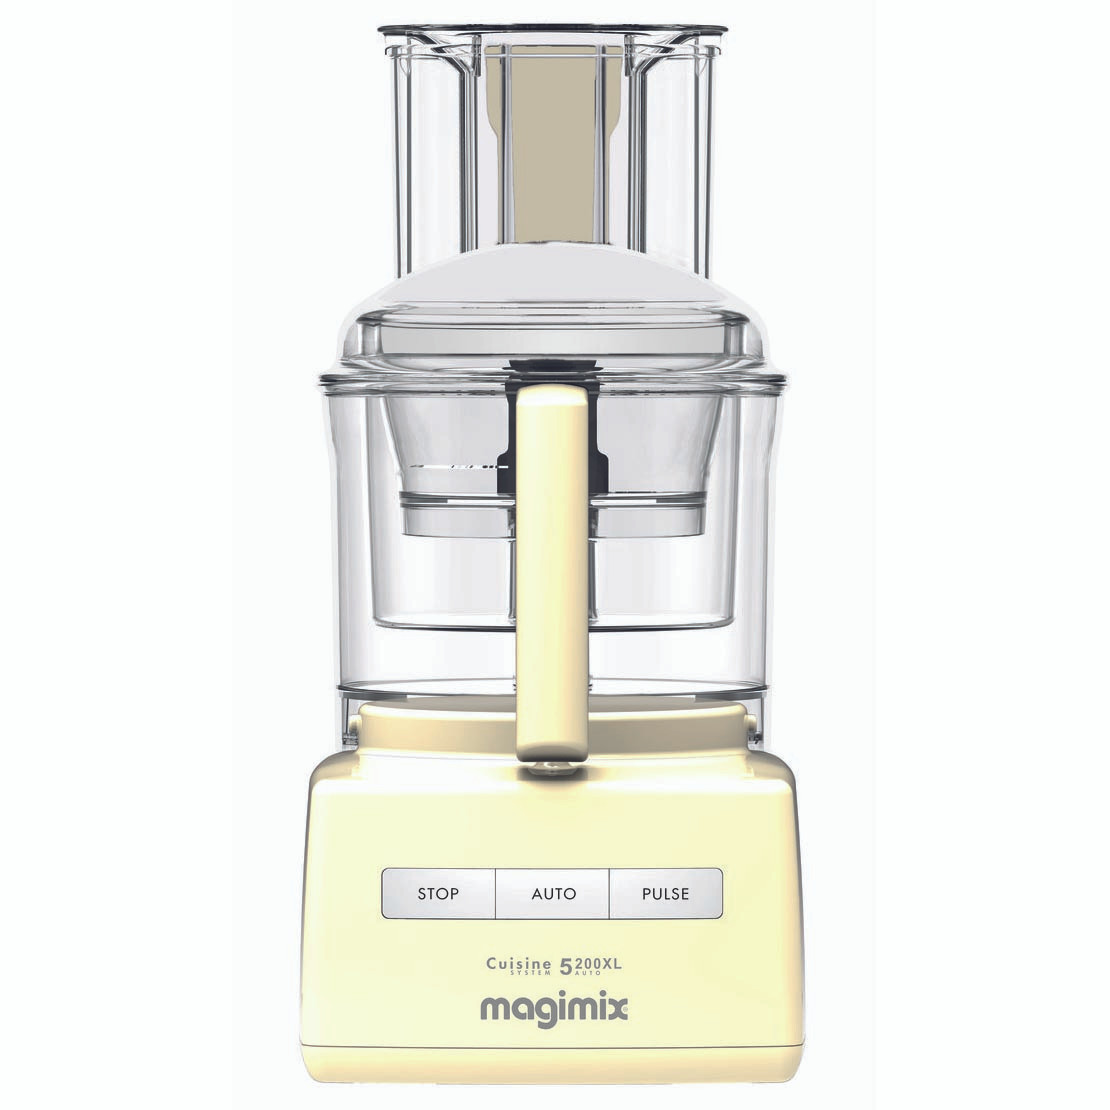 Magimix 5200 XL Premium in Cream